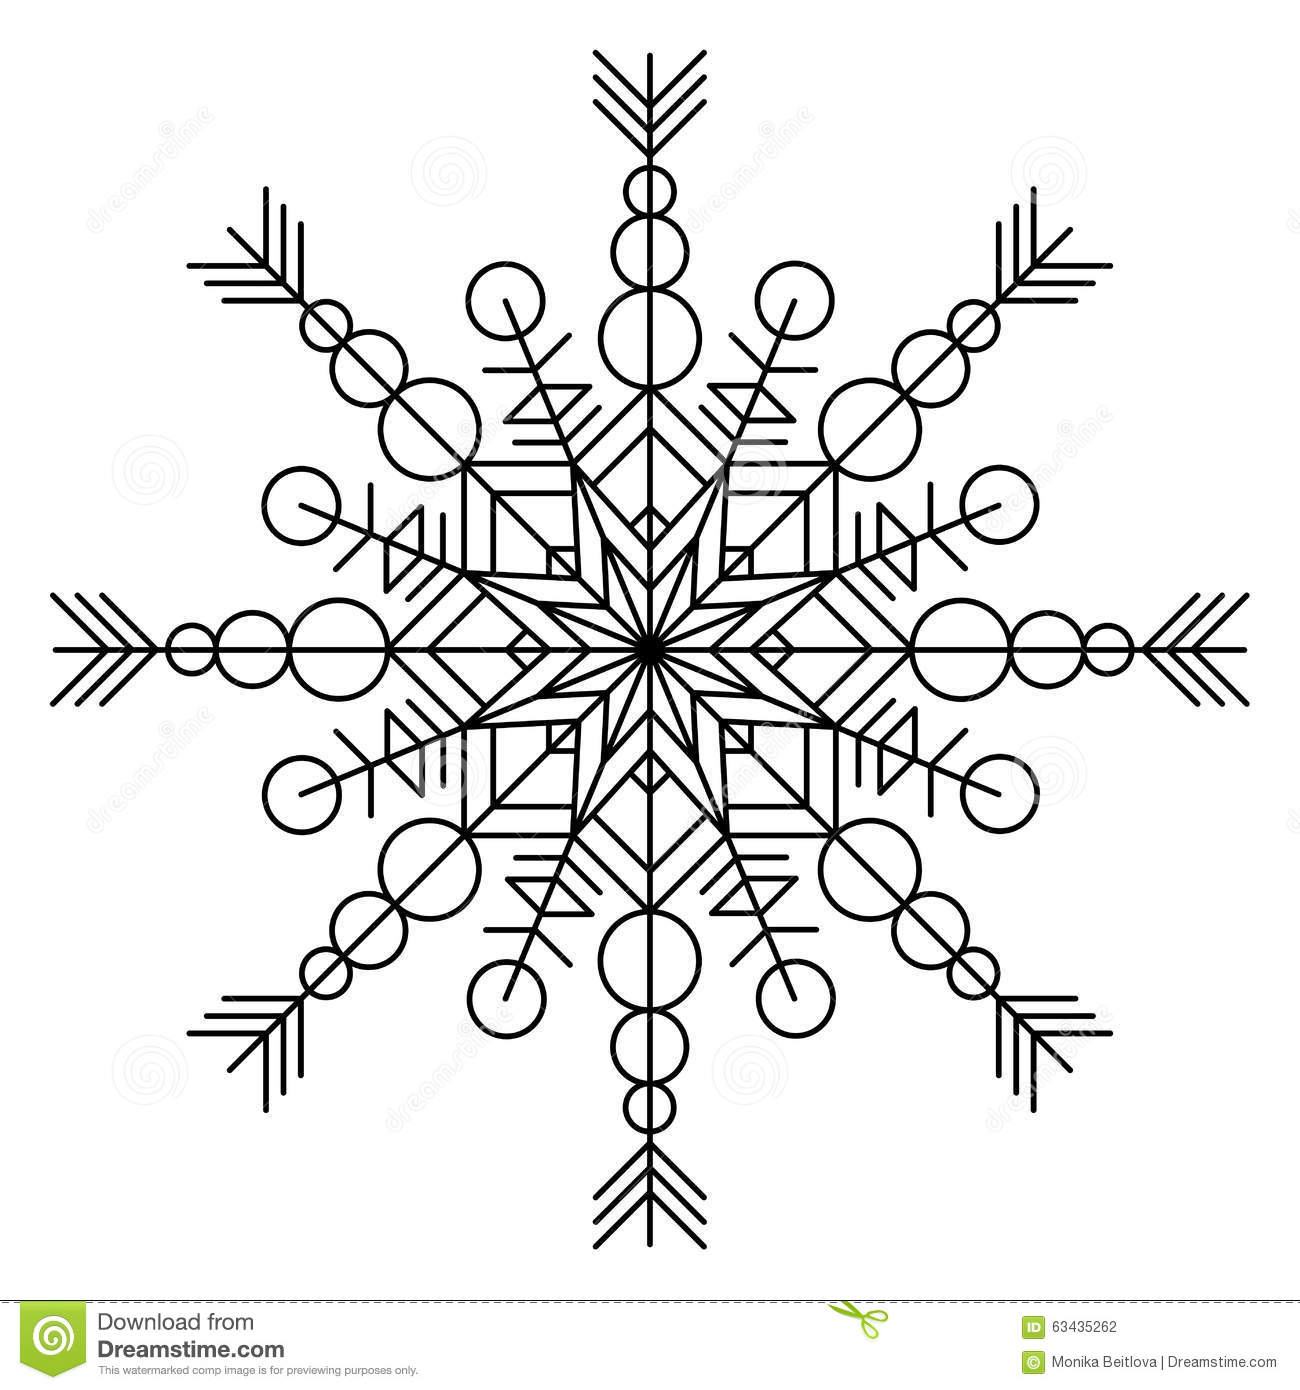 Snowflake coloring book stock vector. Illustration of circle - 63435262